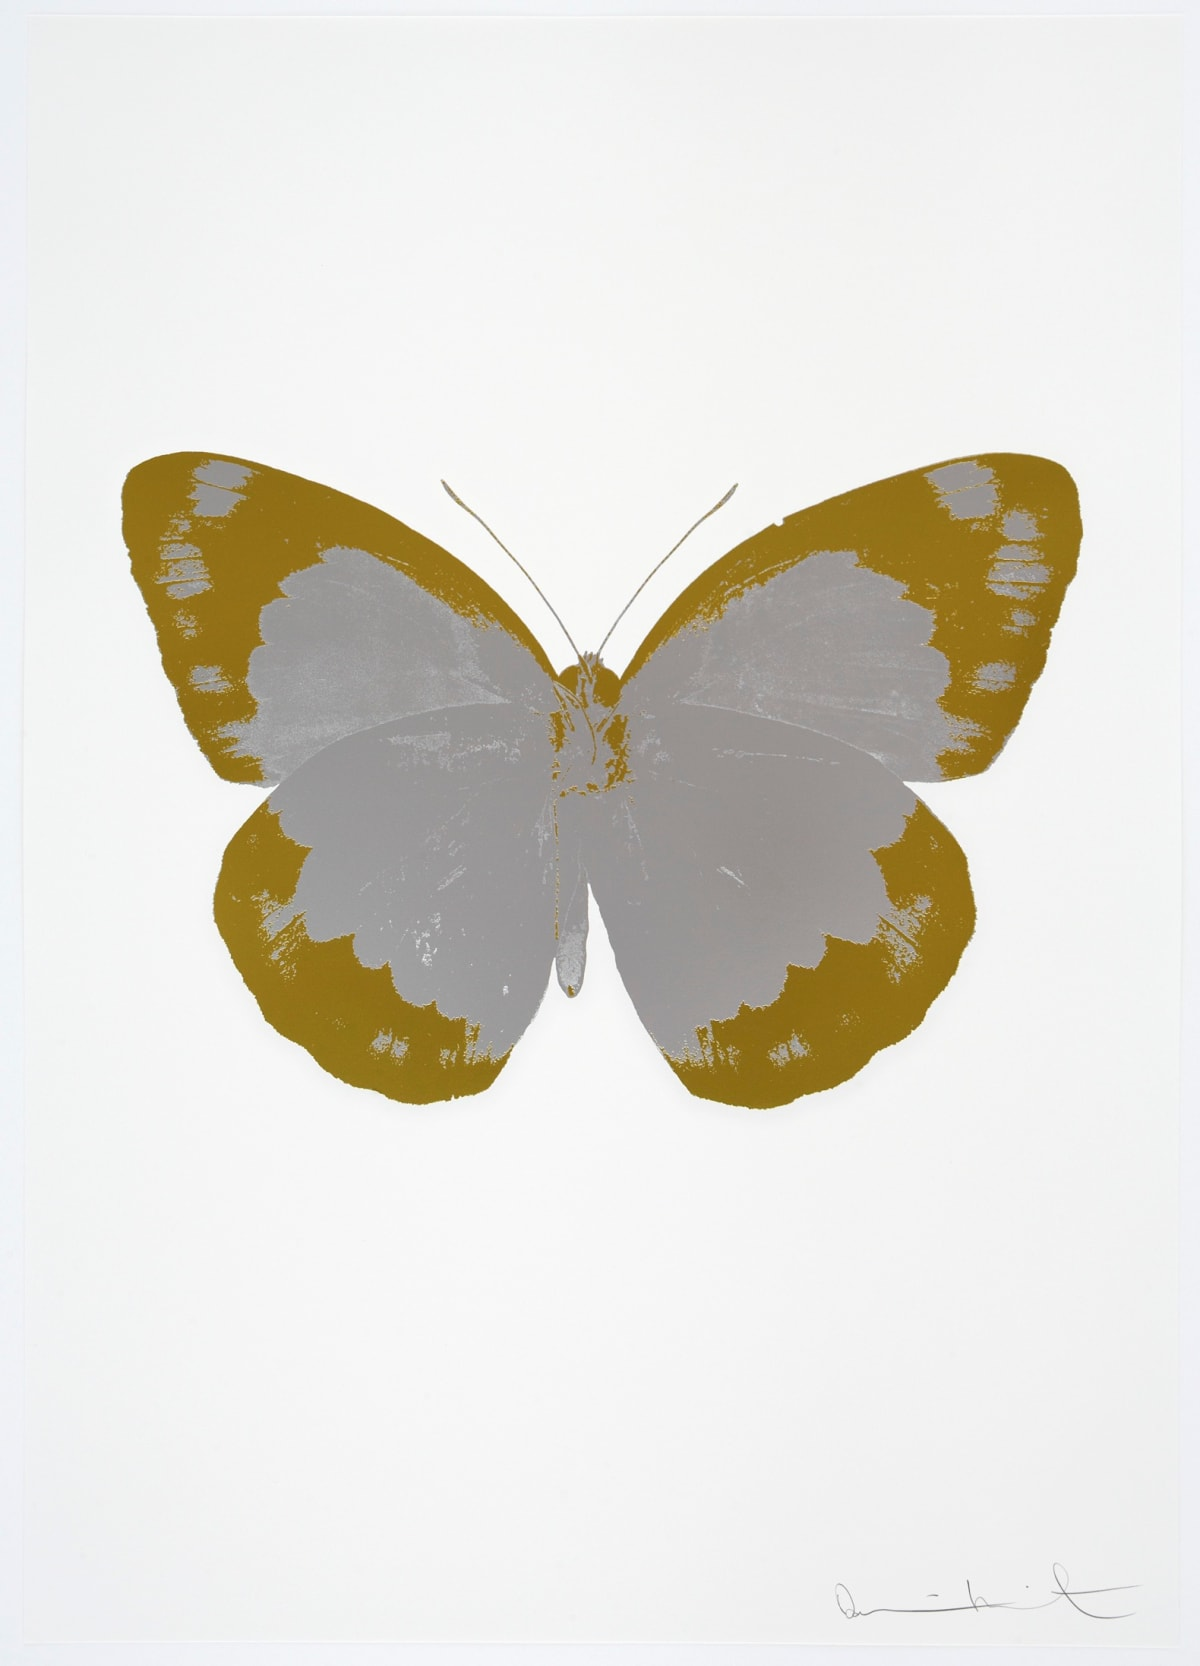 Damien Hirst The Souls II - Silver Gloss/Oriental Gold/Blind Impression, 2010 2 colour foil block on 300gsm Arches 88 archival paper. Signed and numbered. Published by Paul Stolper and Other Criteria 72 x 51cm Edition of 15